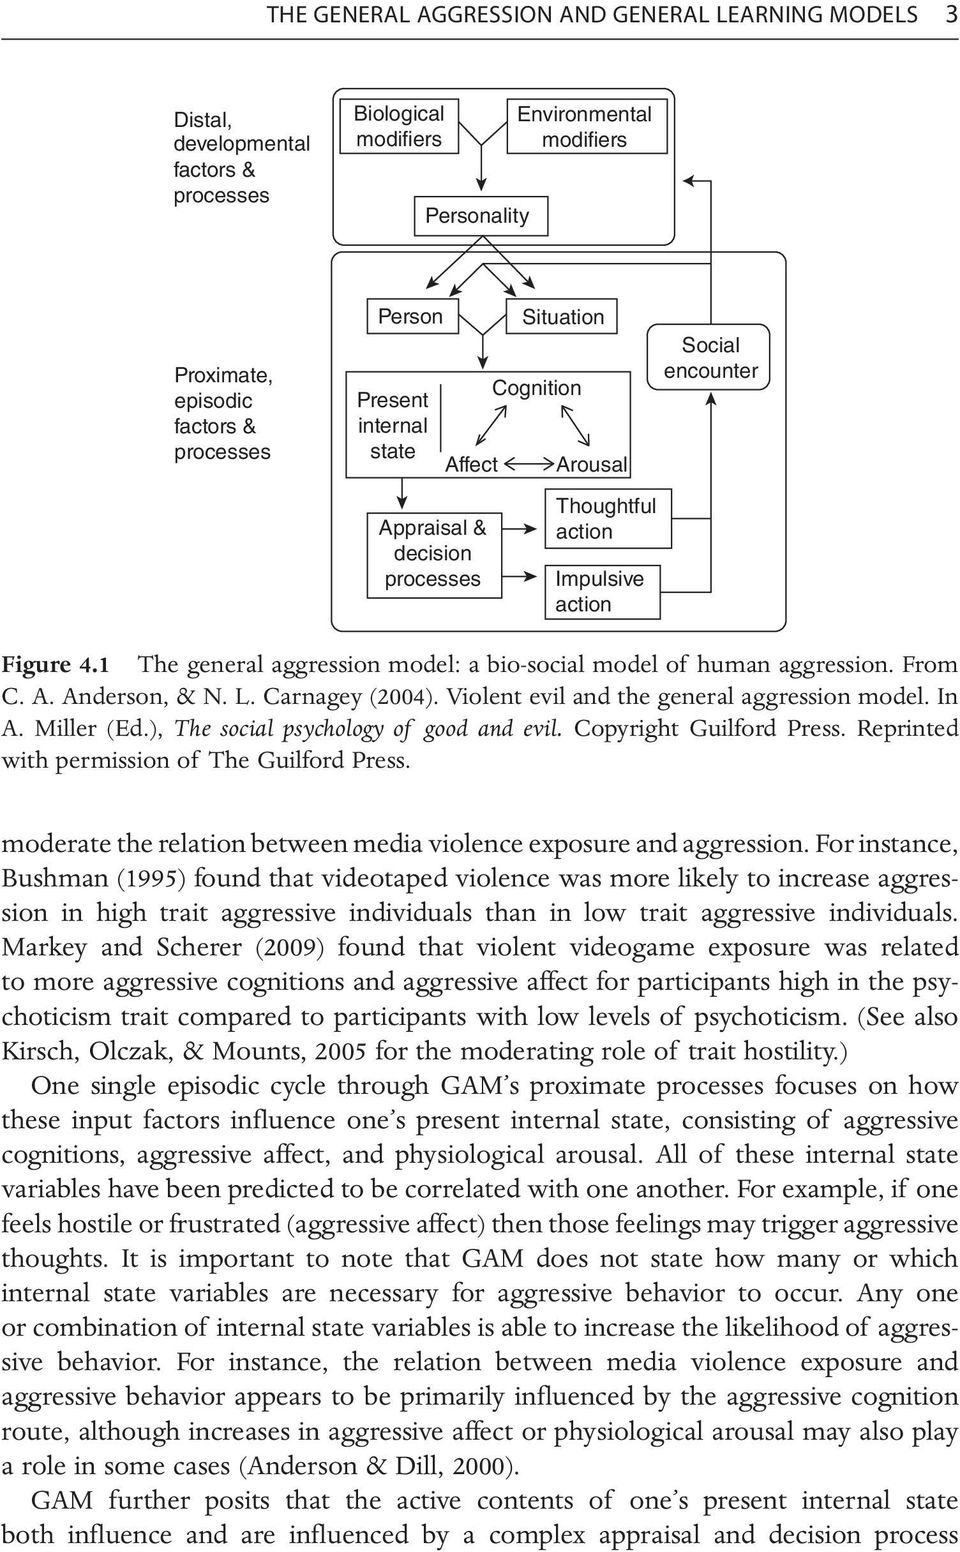 1 The general aggression model: a bio-social model of human aggression. From C. A. Anderson, & N. L. Carnagey (2004). Violent evil and the general aggression model. In A. Miller (Ed.